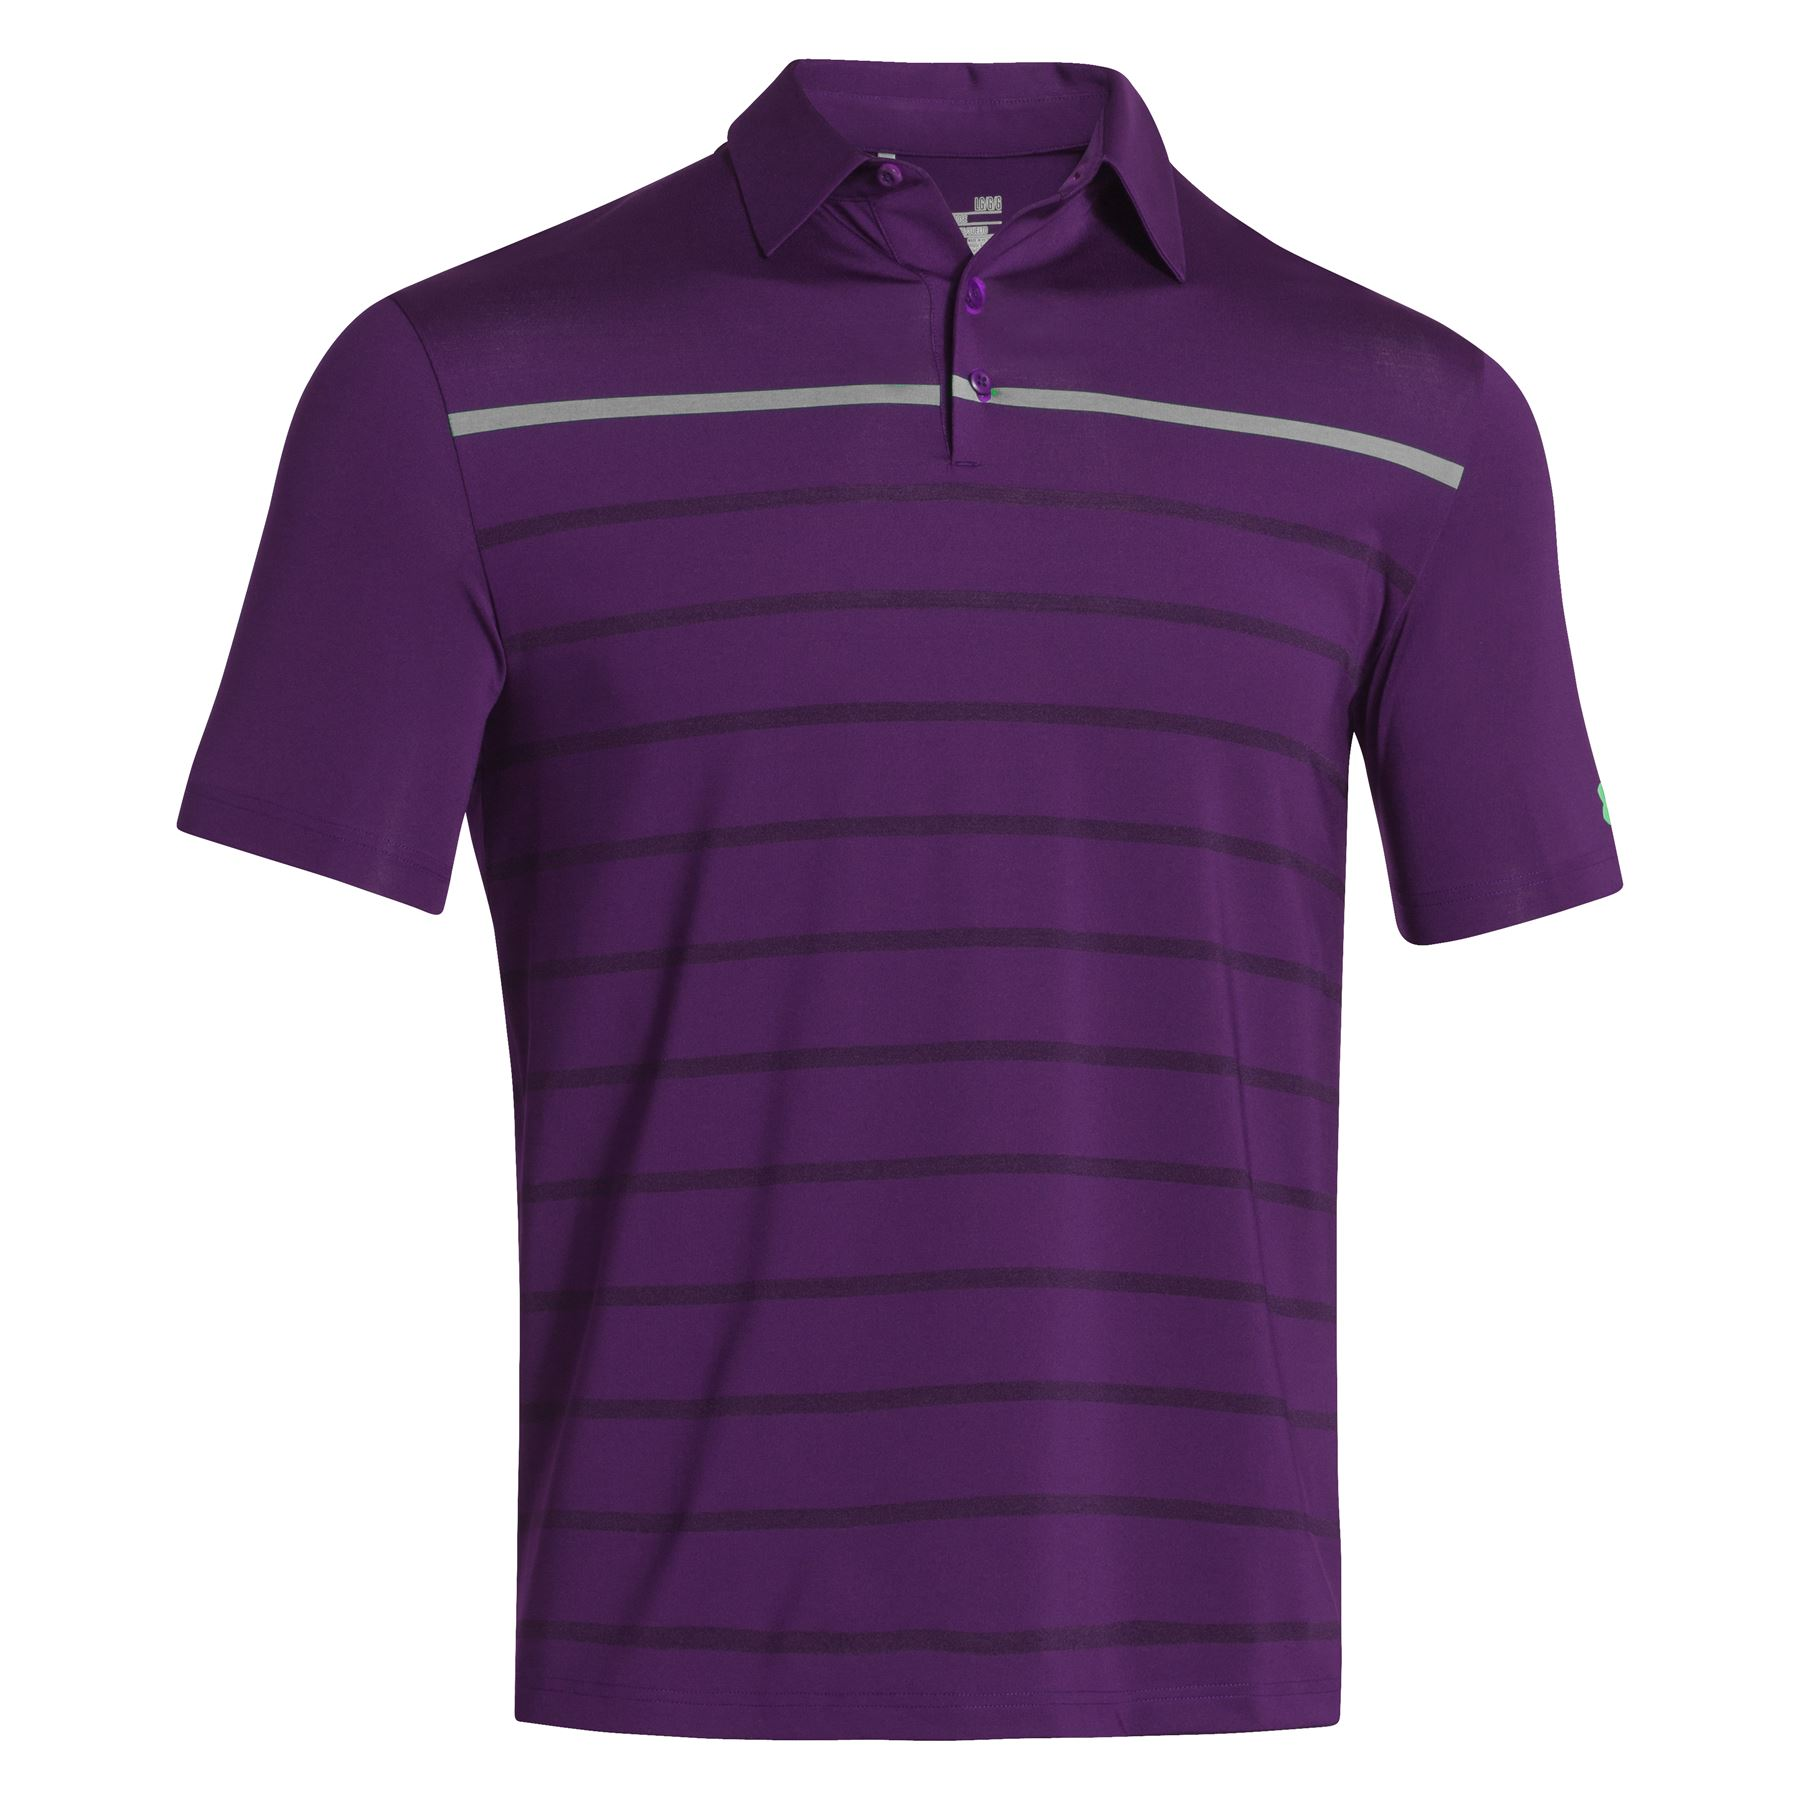 Mens Polo Shirts On Sale Driverlayer Search Engine